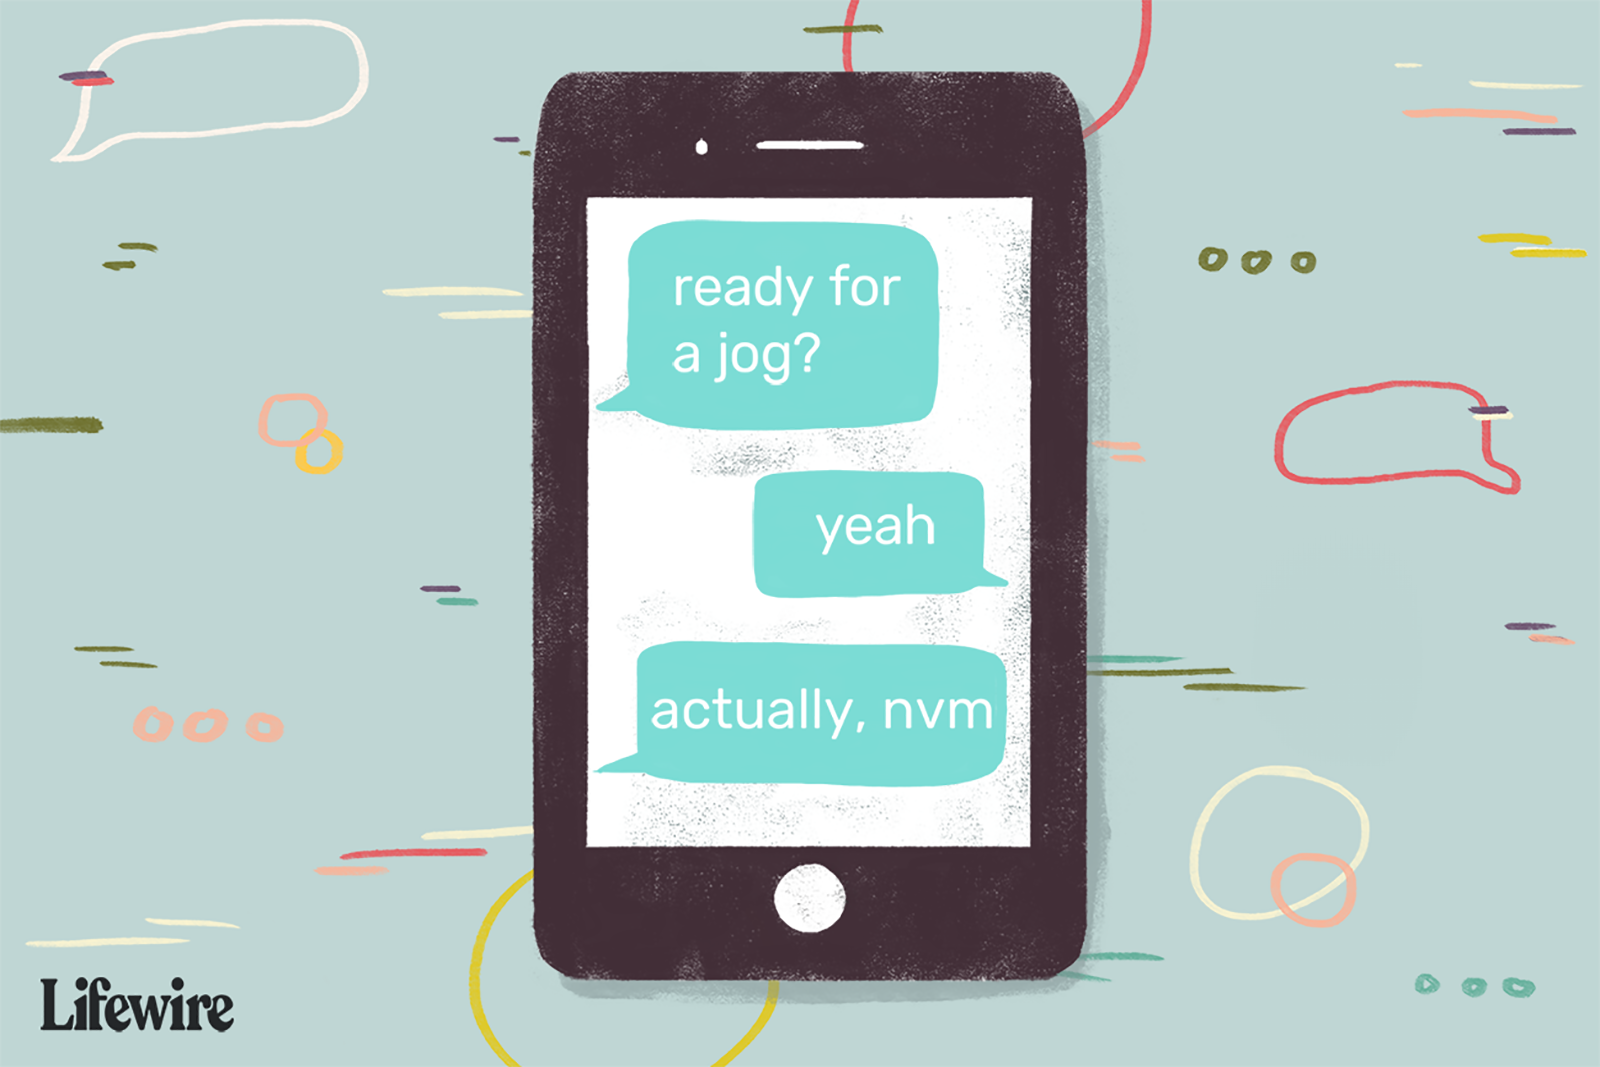 And illustration showing how 'nvm' is used.